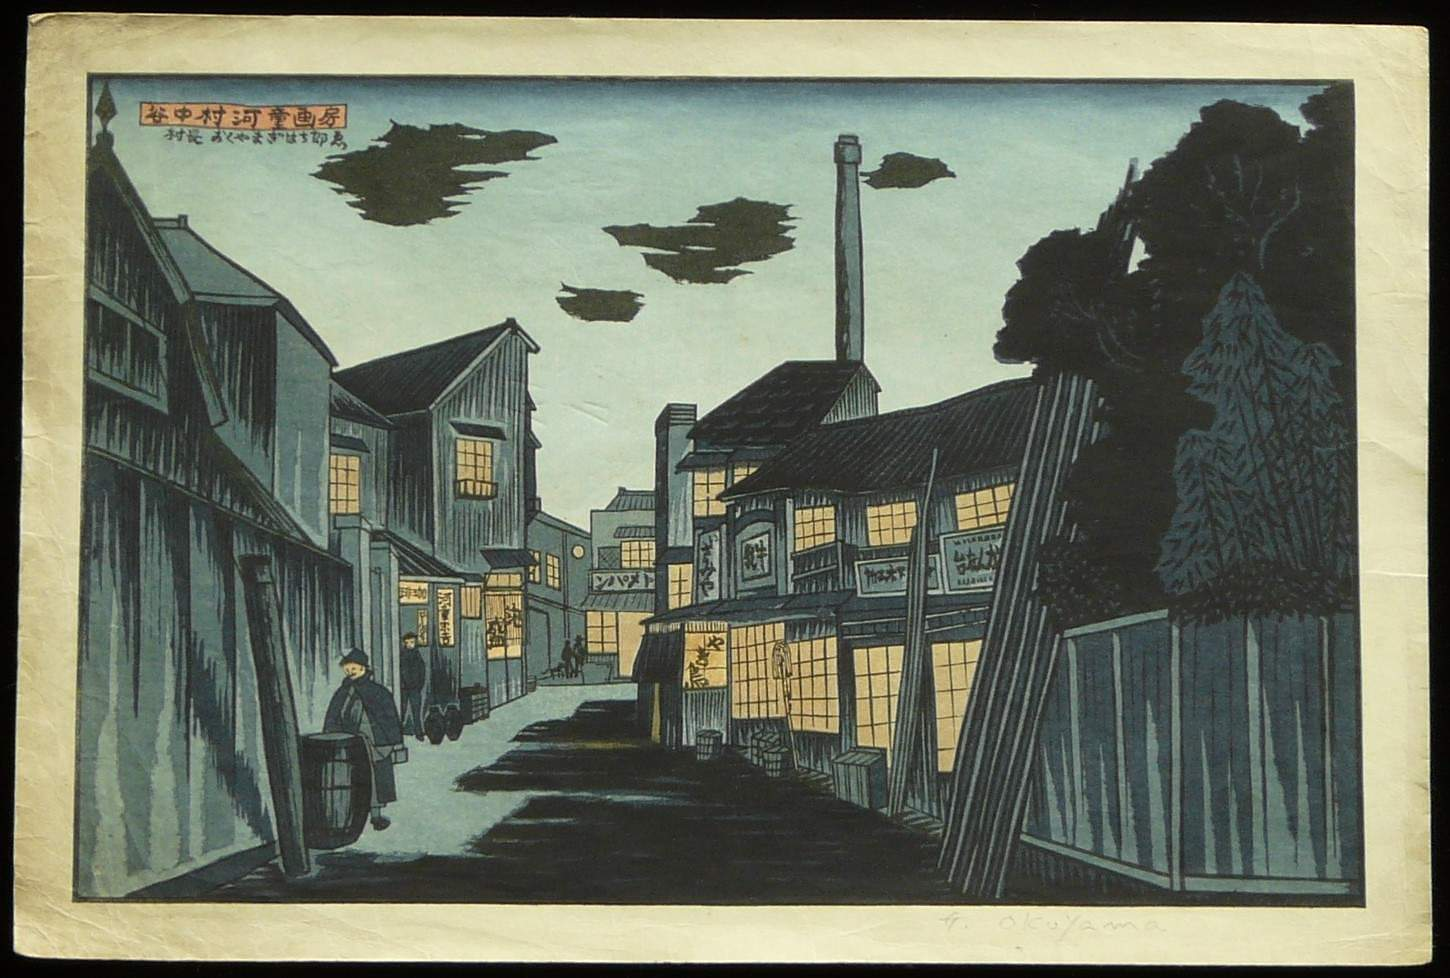 GIHACHIRO OKUYAMA: #P2247 NIGHT IN THE VILLAGE